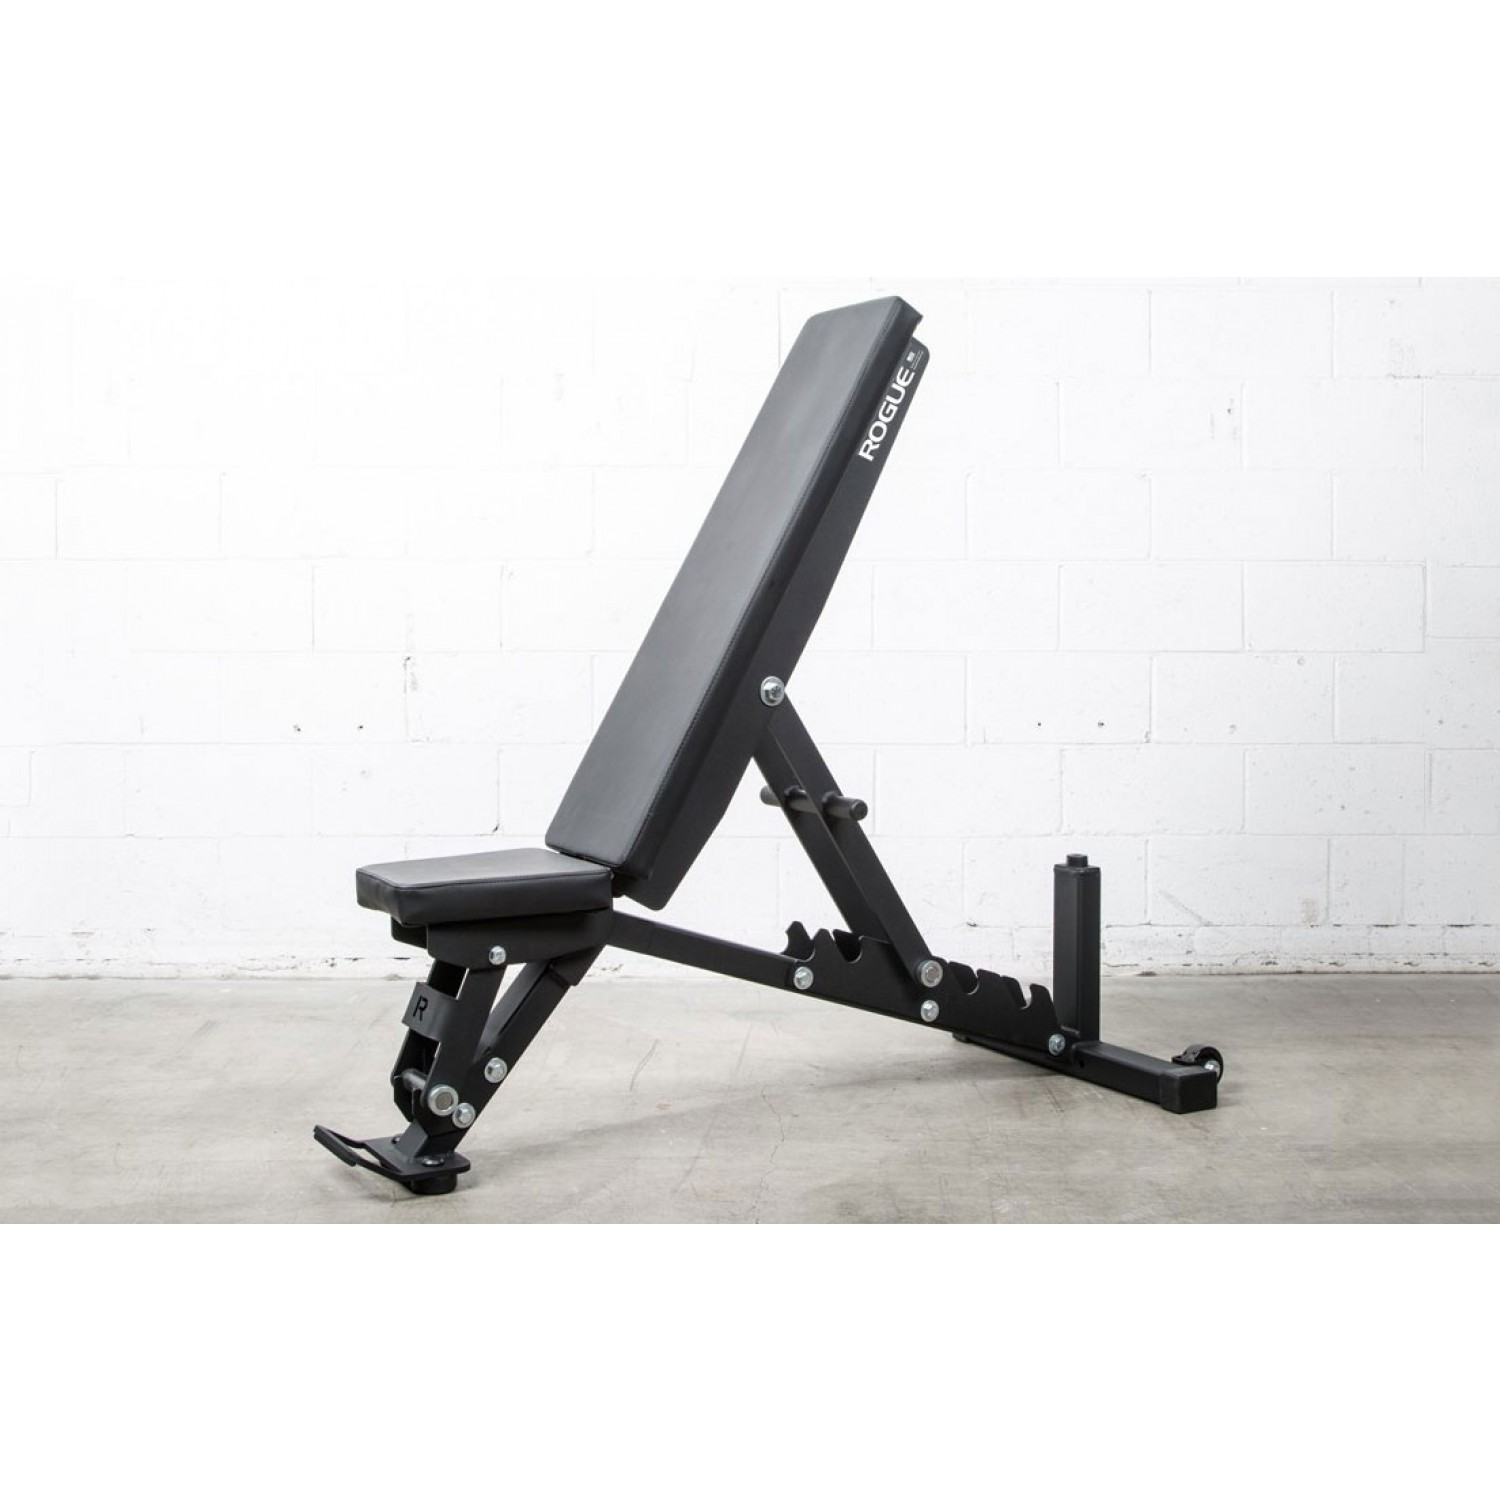 Rogue Adjustable bench